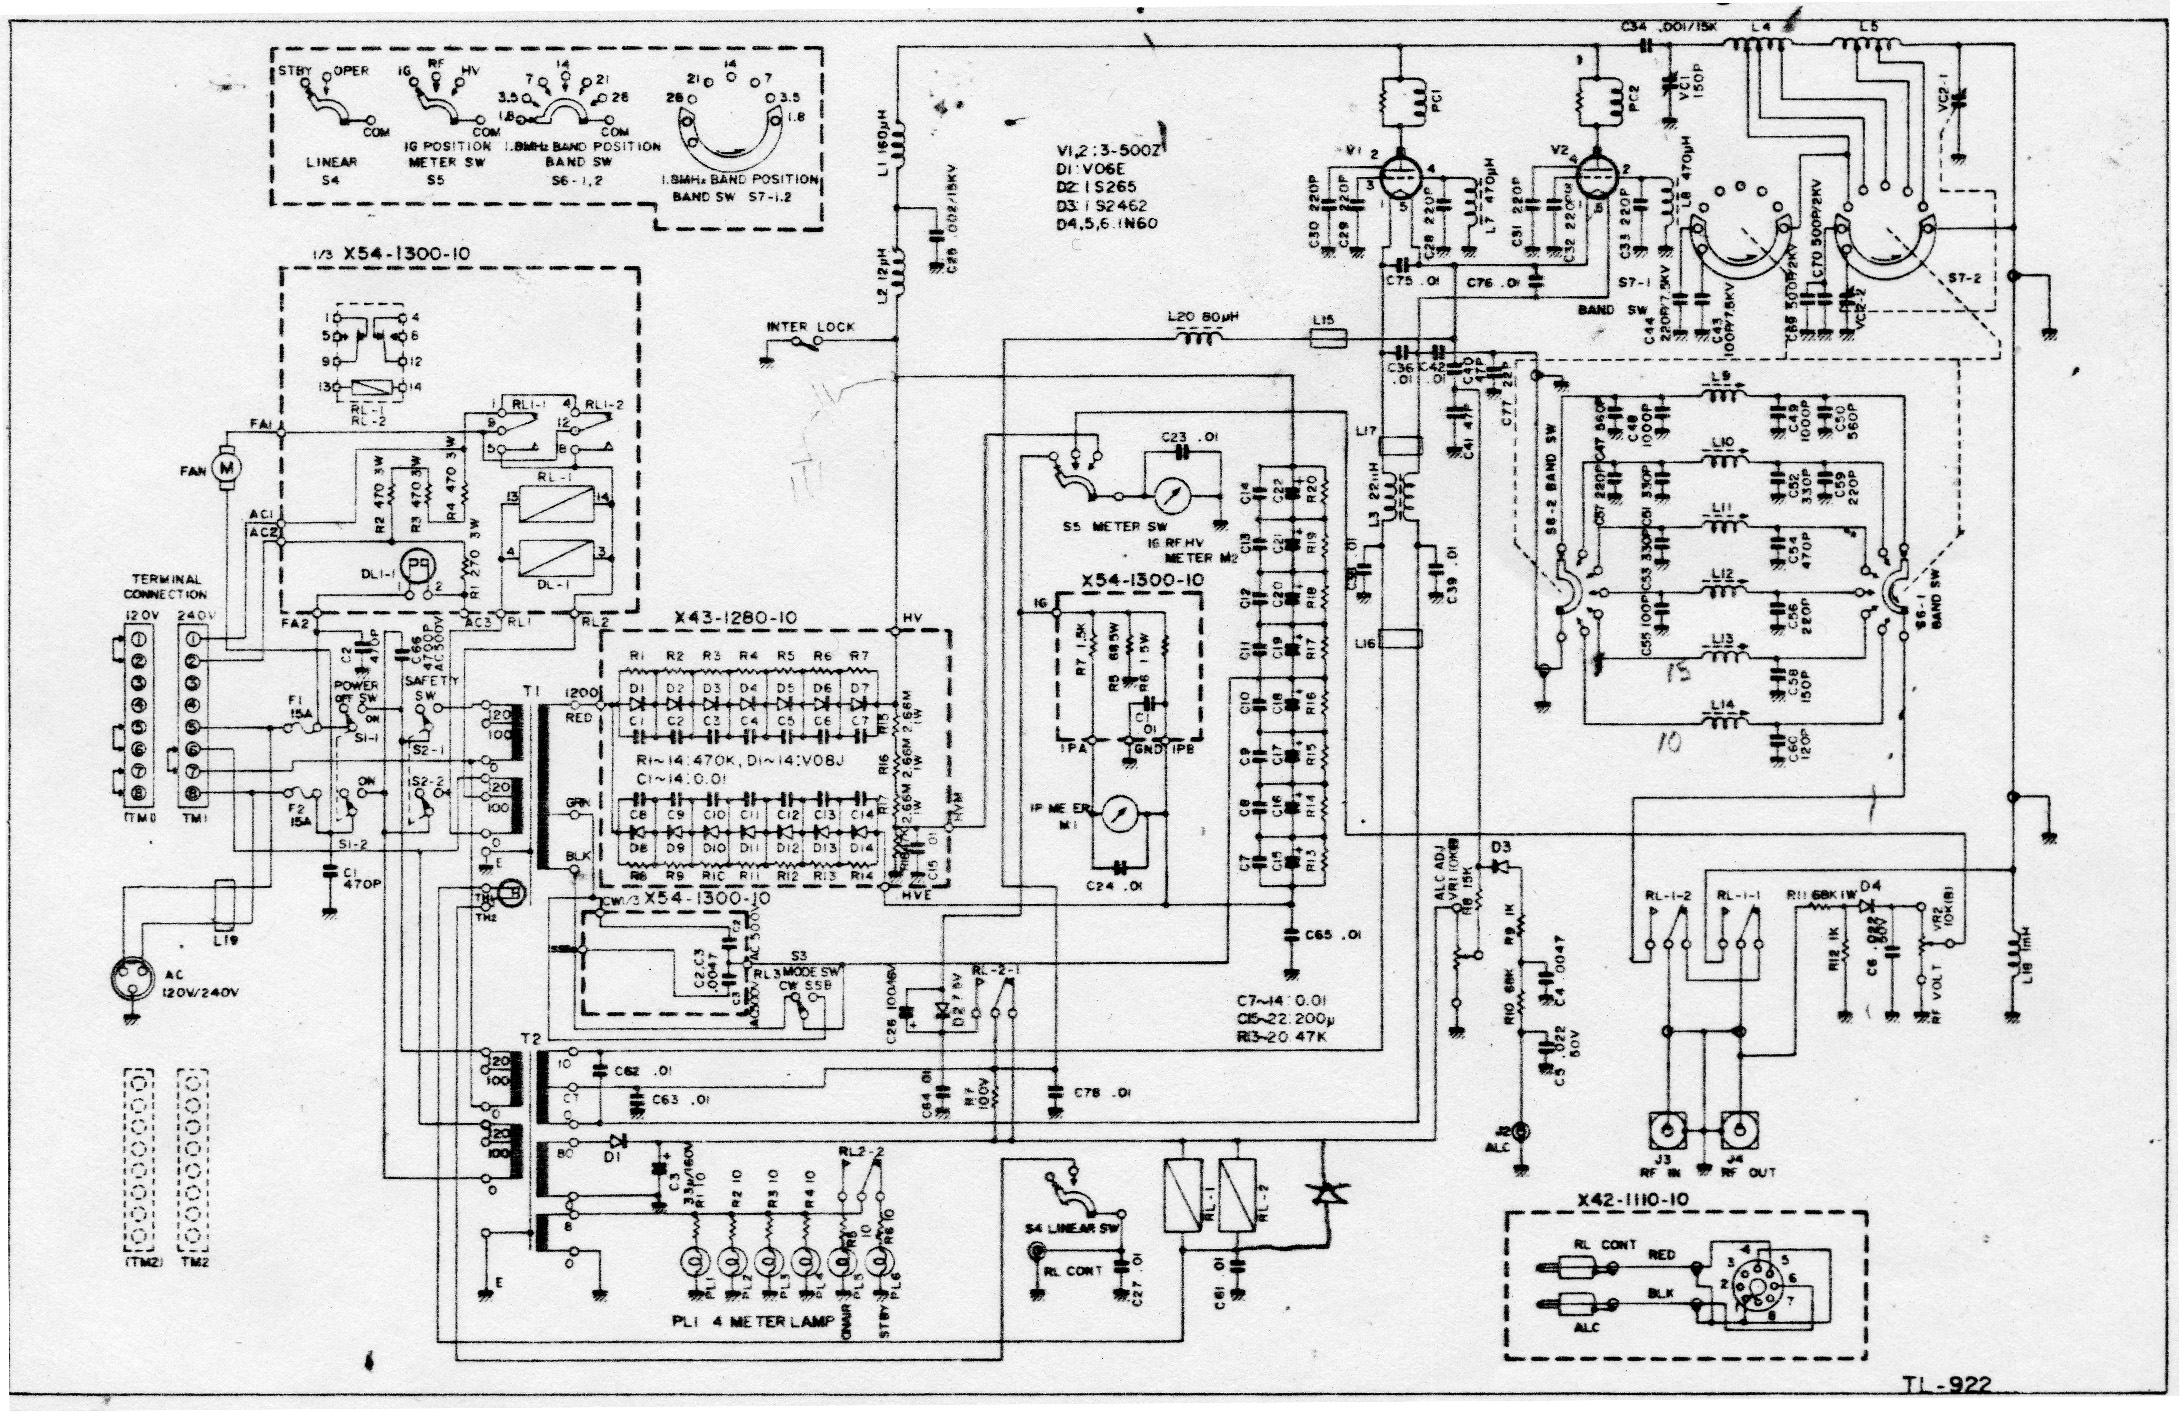 Dc Resistance Schematic Diagram moreover lificatori lineari furthermore Wiring Diagram On Lincoln Ac 225 Welder besides Inversores further Ammonia Refrigeration System Schematic. on tig welder wiring diagram